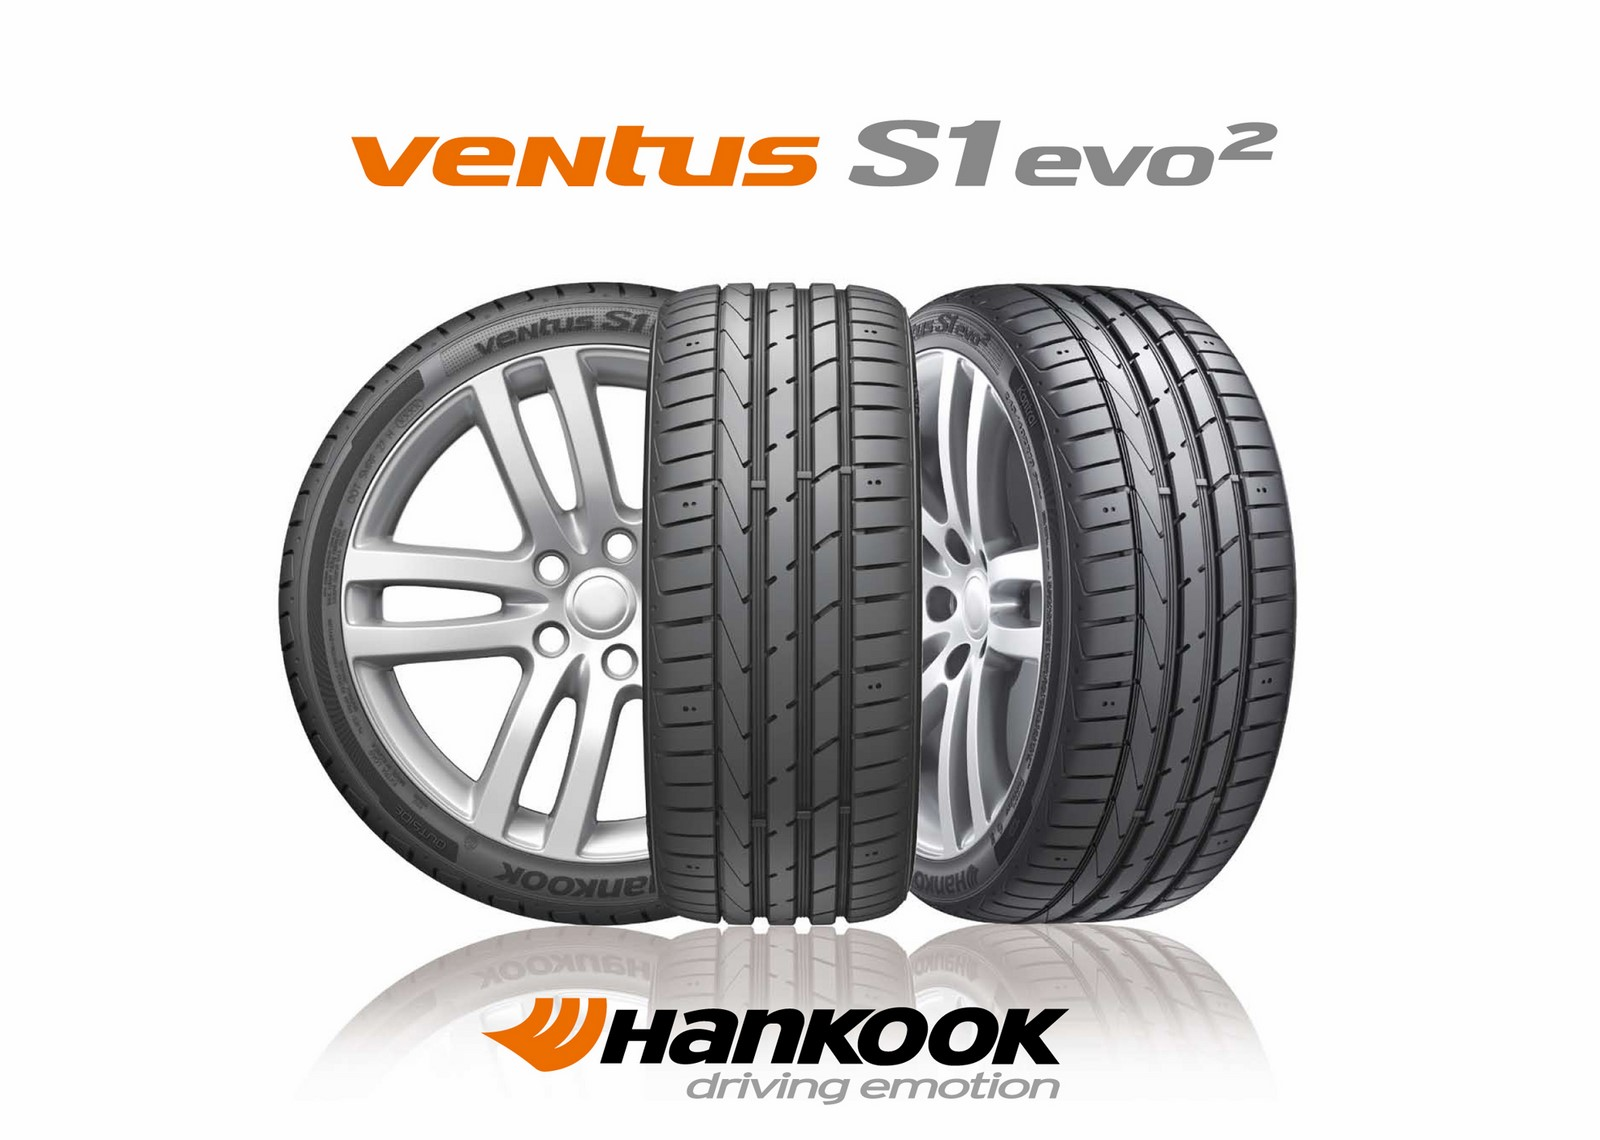 hankook uhp tire as oe on new audi rs5 coupe tires parts news. Black Bedroom Furniture Sets. Home Design Ideas